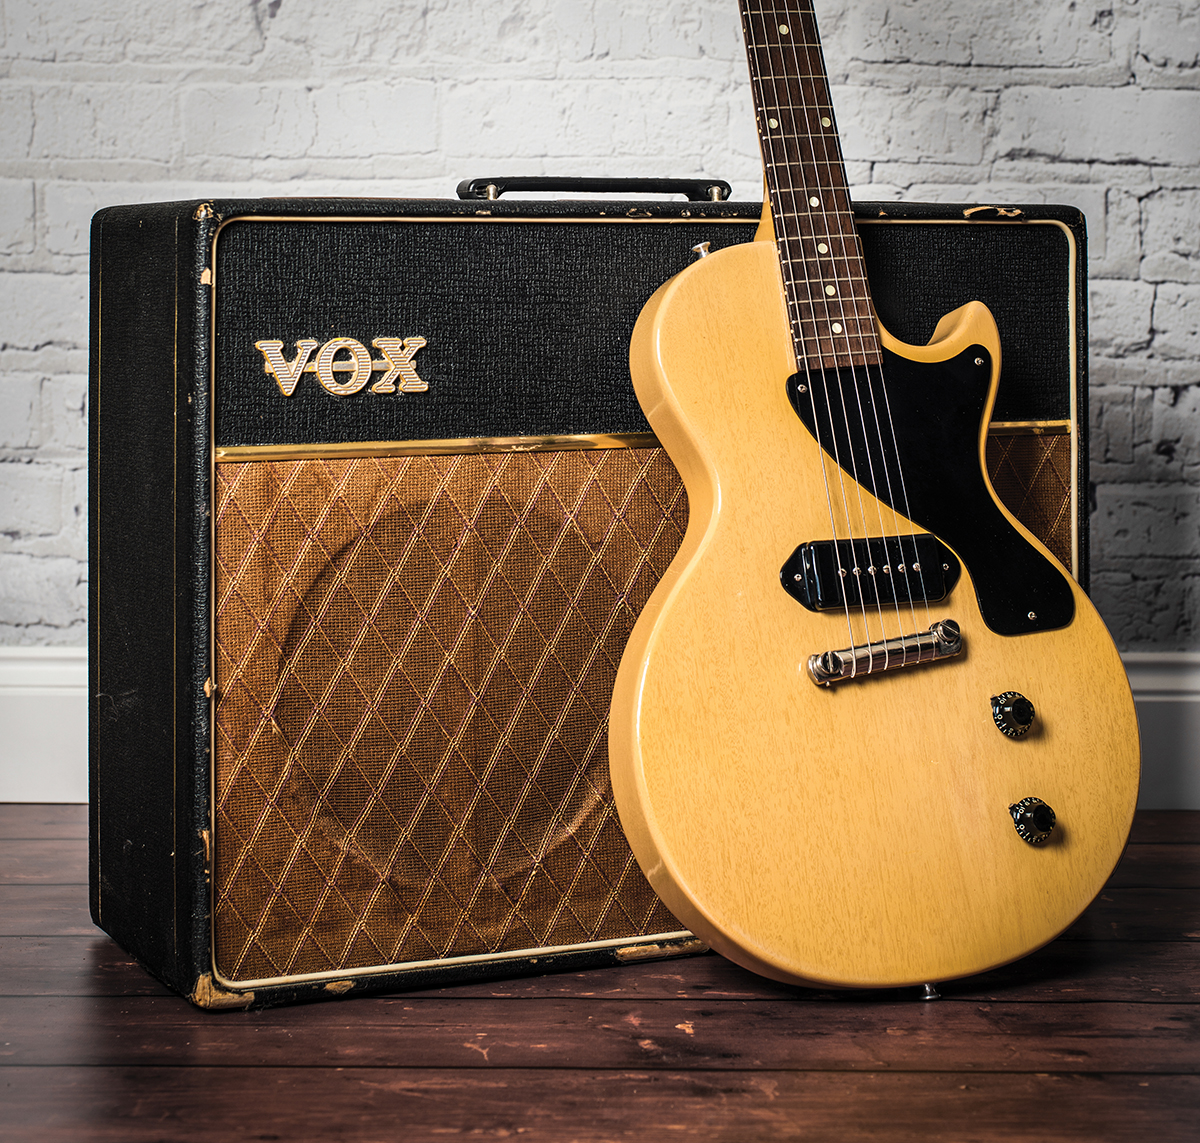 50 Low Cost Ways To Improve Your Guitar Tone All Telecaster Style Wiring Solution For A 2 Humbucker Tele Jazz Players Aside Who Needs Neck Pickups Luther Perkins The Reverend Billy F Gibbons Eddie Van Halen And Billie Joe Armstrong Have Enjoyed